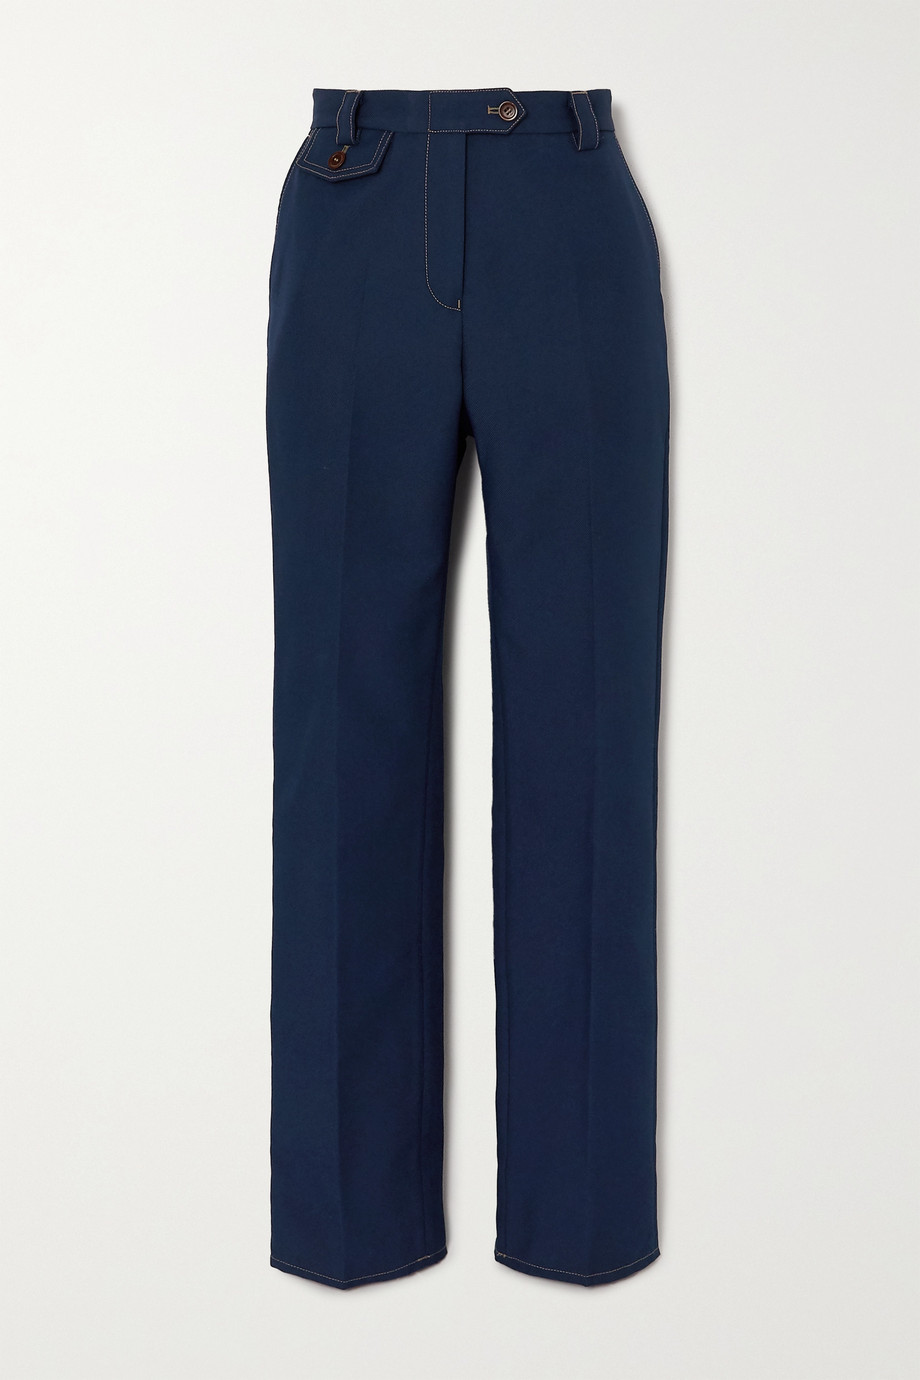 Wales Bonner Isaacs topstitched twill straight-leg pants